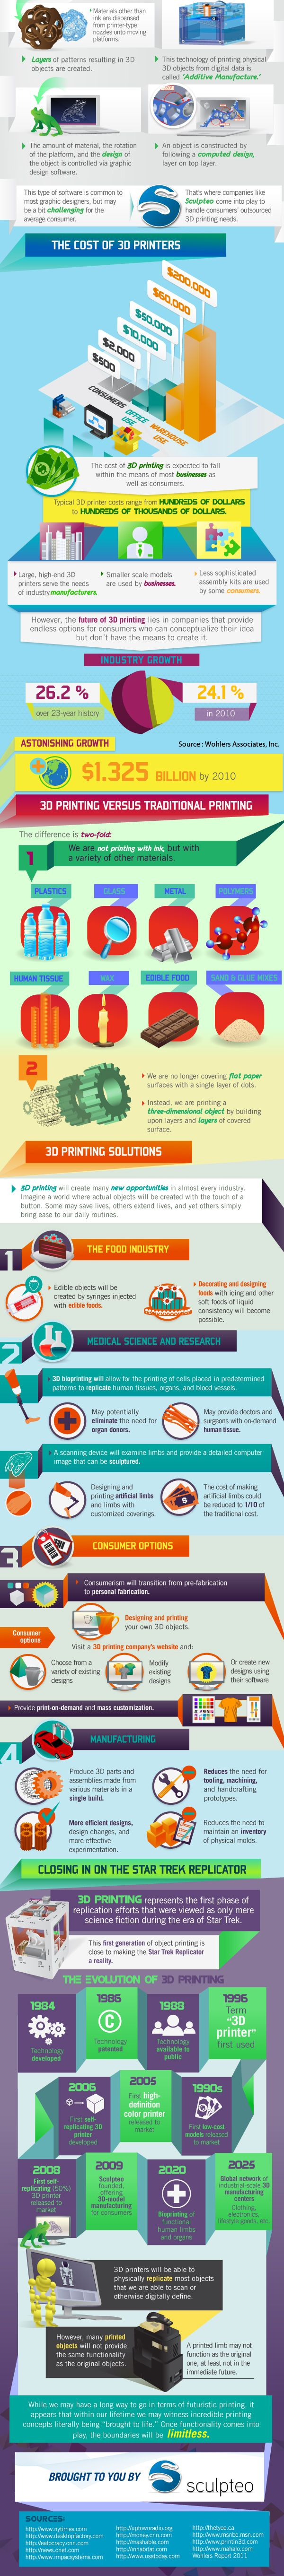 Why 3D Printing is the Future {Infographic} - Best Infographics